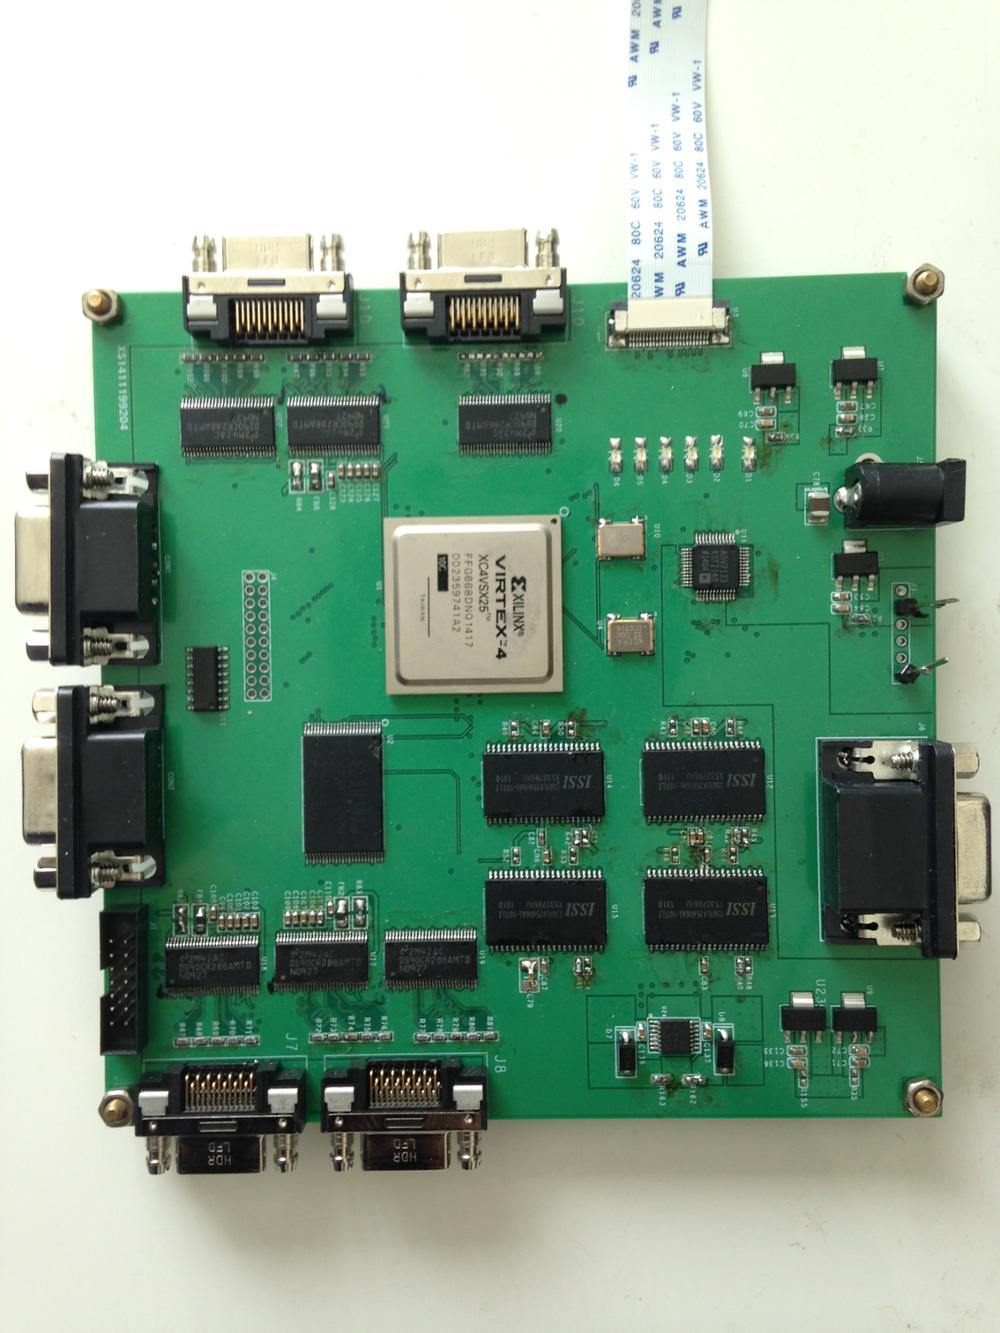 Cameralink development board PCI image acquisition card customized FPGA-HDMI coded -LVDS camera